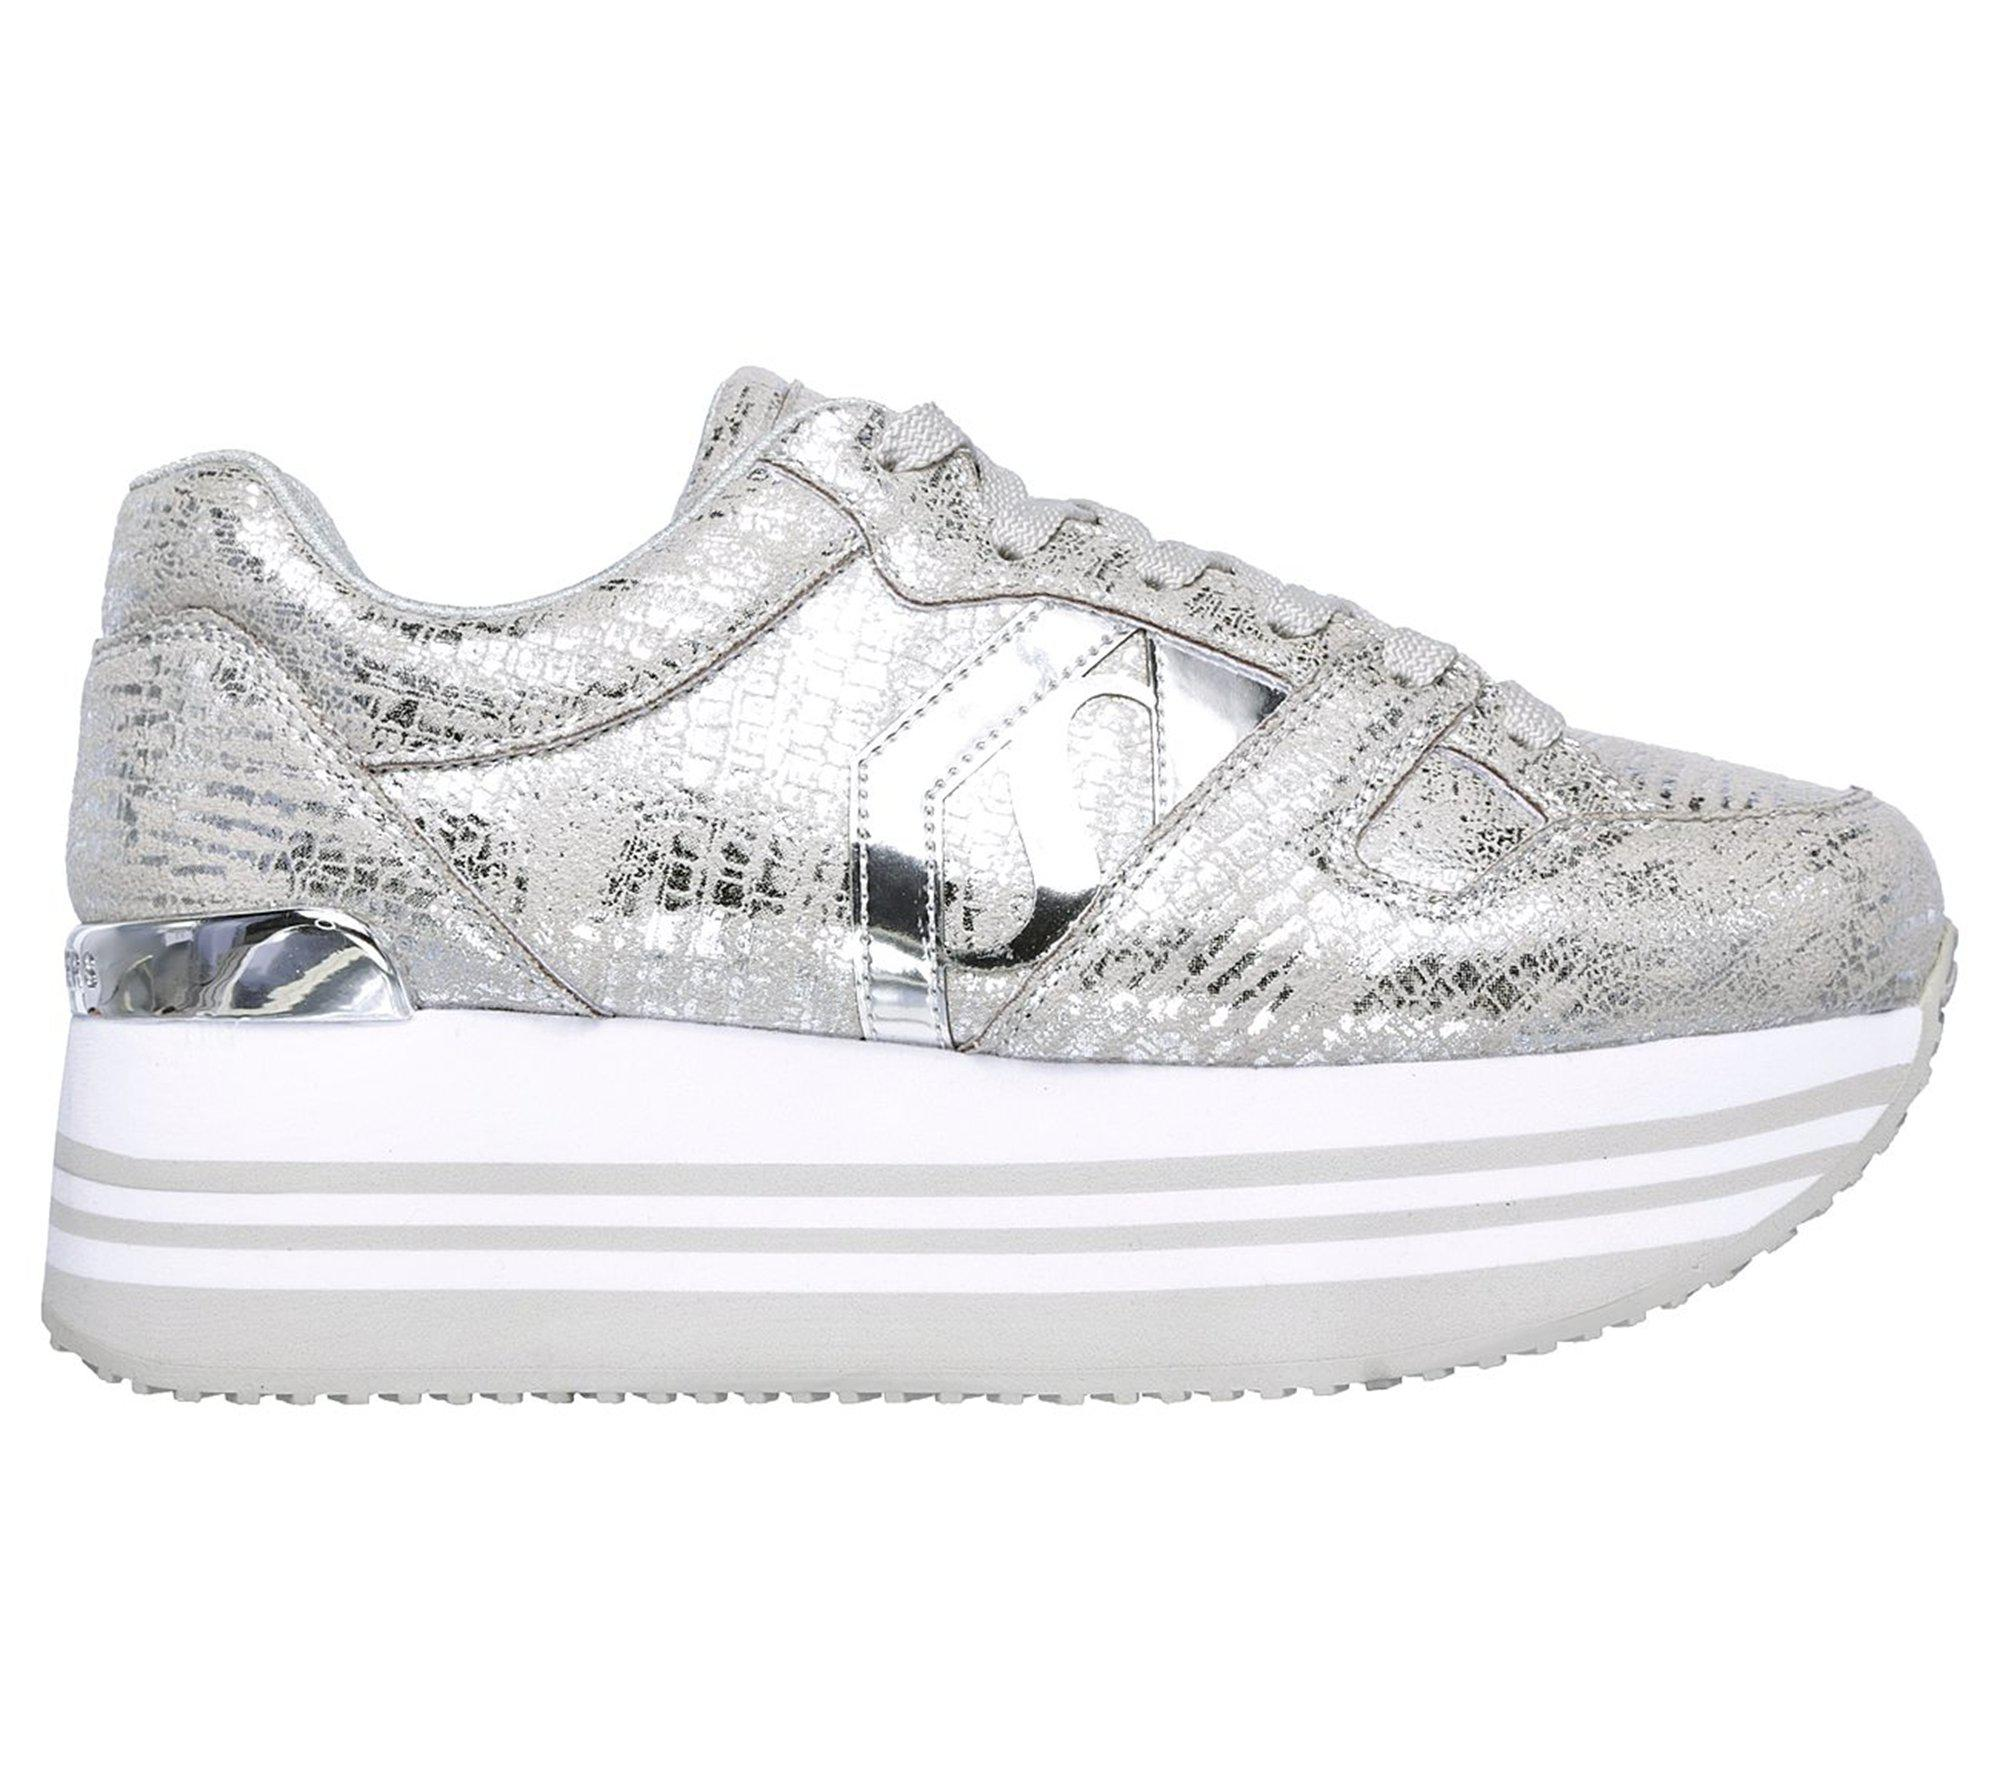 Metallic Lyst Skechers in Highrise Shine High qqXxwRP6